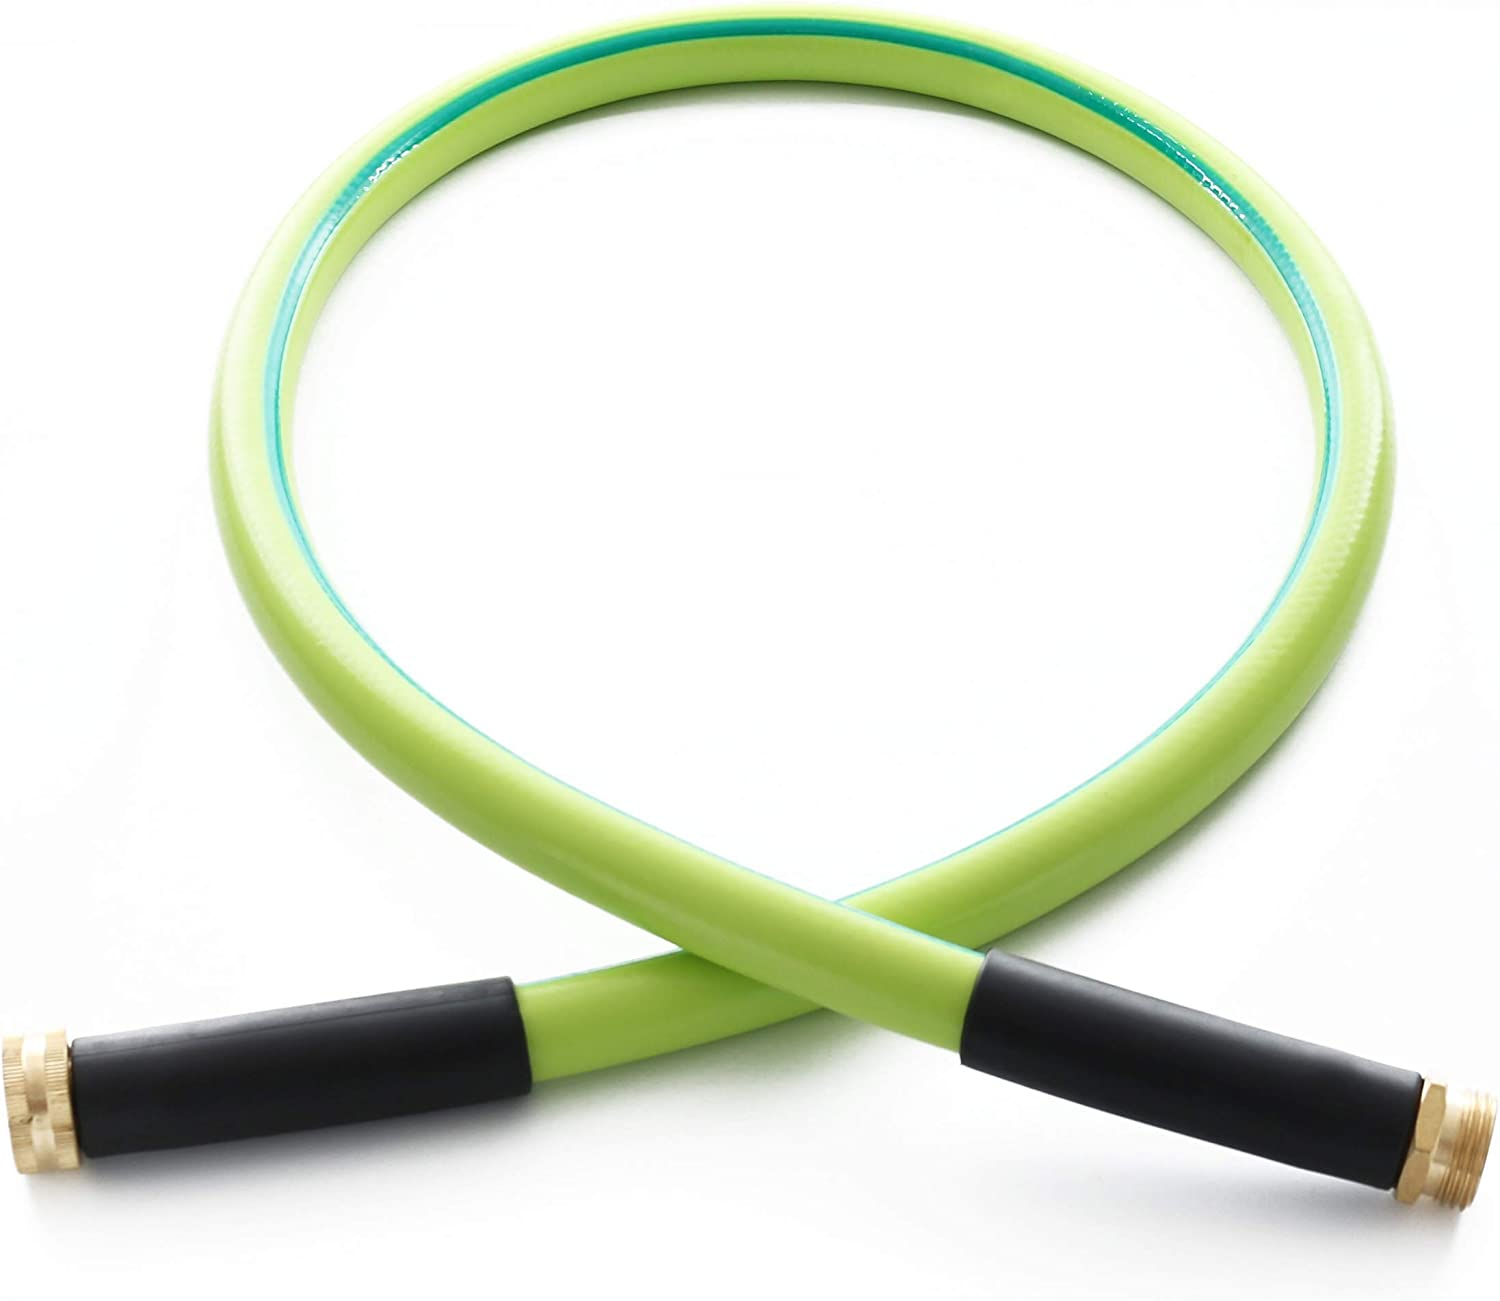 Atlantic Premium Hybrid Garden Hose 5/8 IN. x 4 FT. Working Under -4°F, Light Weight and Coils Easily, Kink Resistant,Abrasion Resistant, Extreme All Weather Flexibility (4 FT)